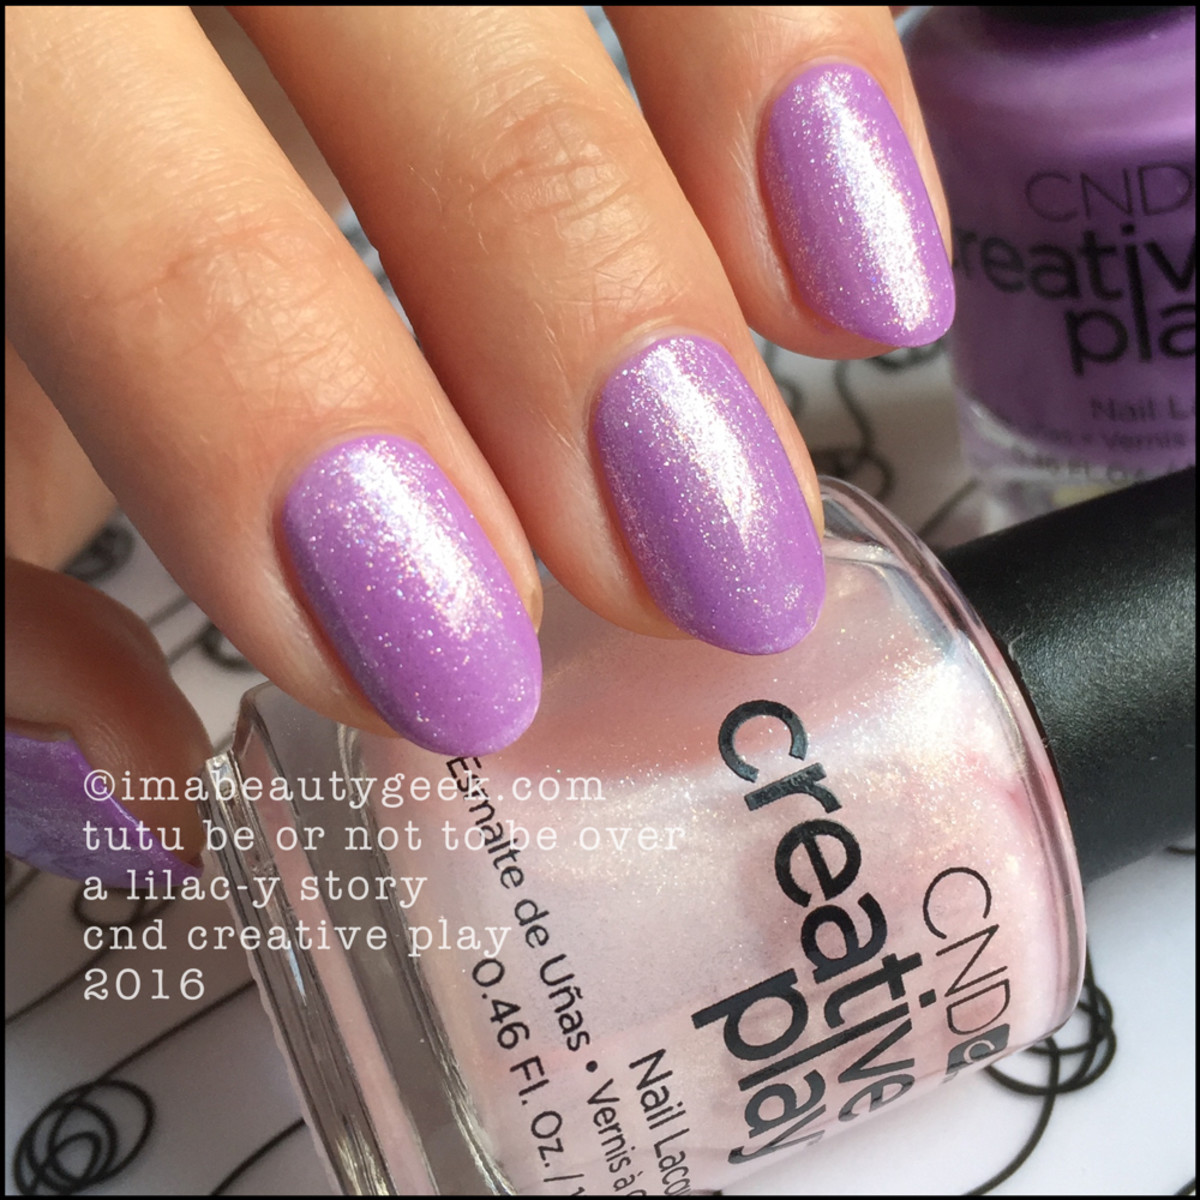 CND Creative Play Tutu Be or Not To Be over A Lilacy Story_CND Creative Play Nail Polish Swatches